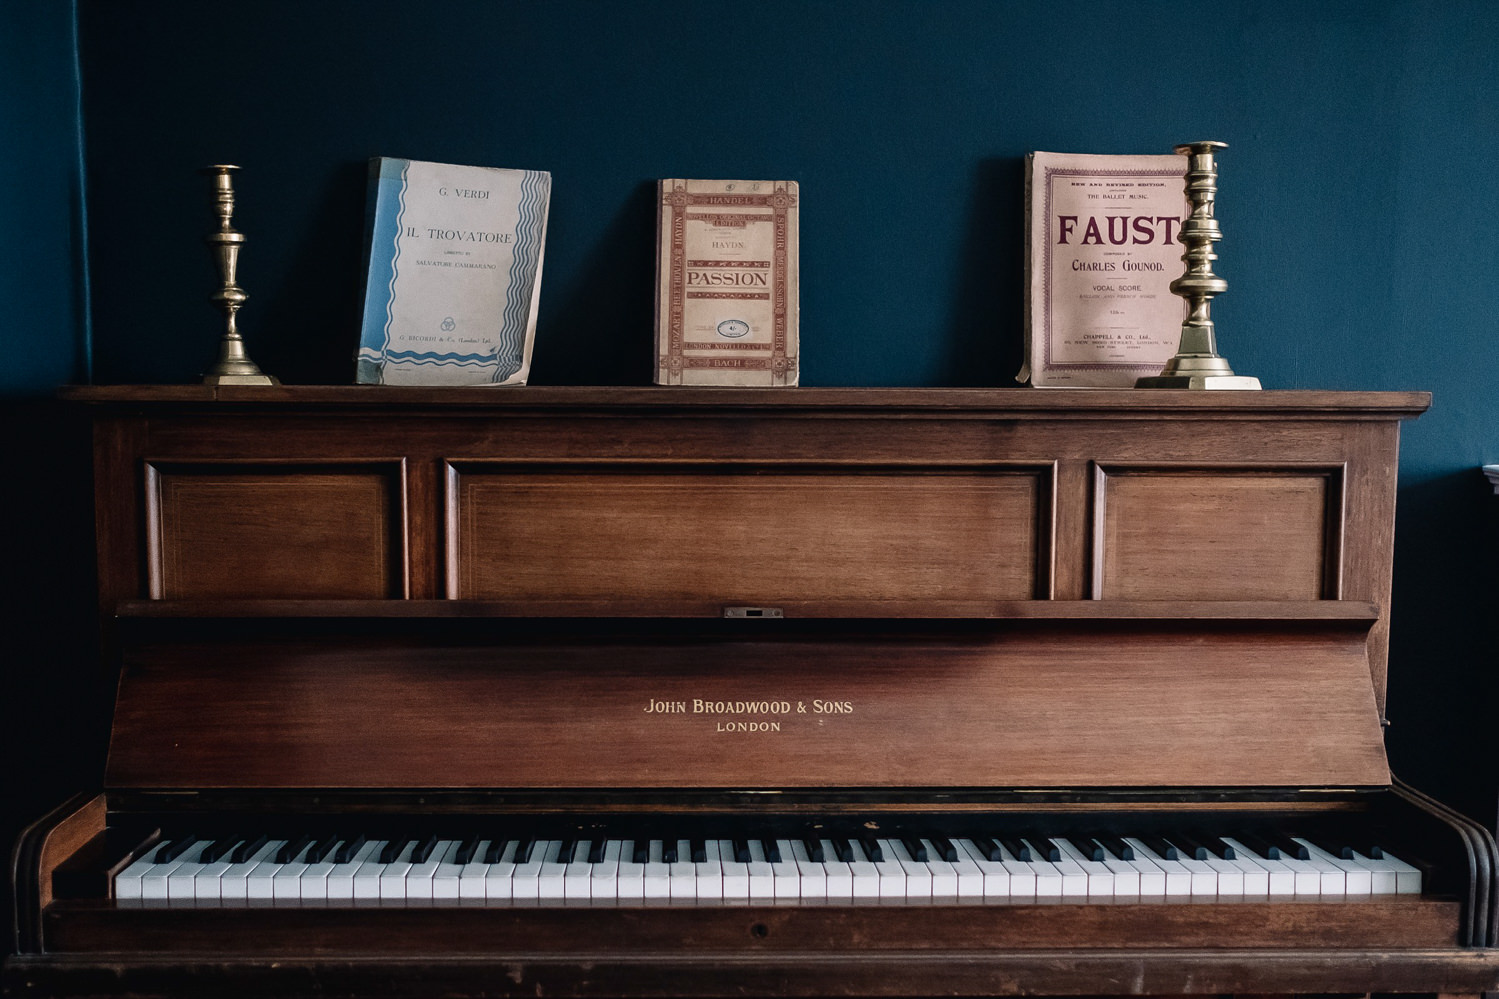 Piano in the Guardswell cottage with sheet music on top stands out against the muted blue wall.